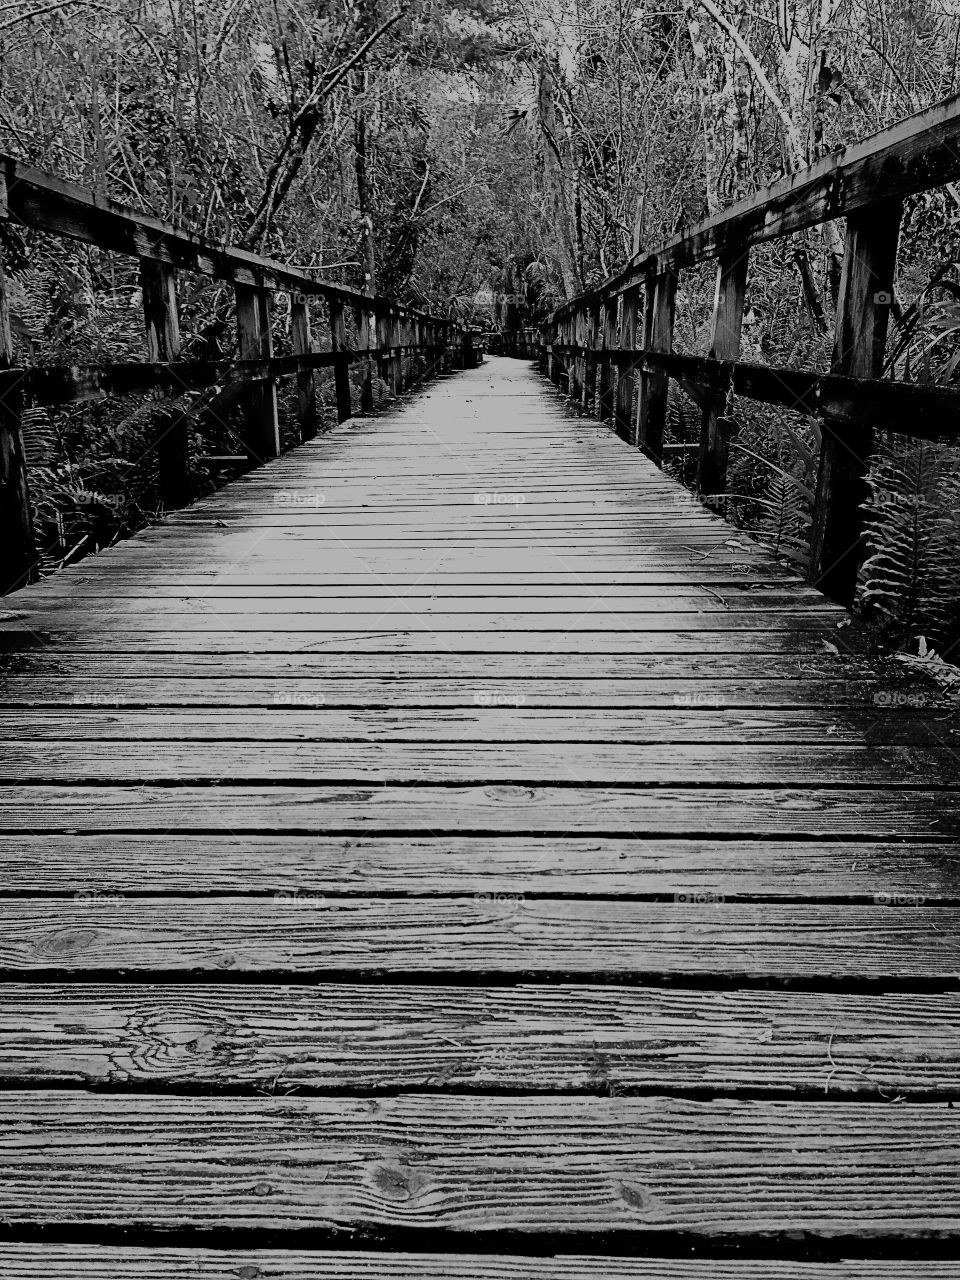 Boardwalk through the tropical forest in mysterious monochromatic tones.